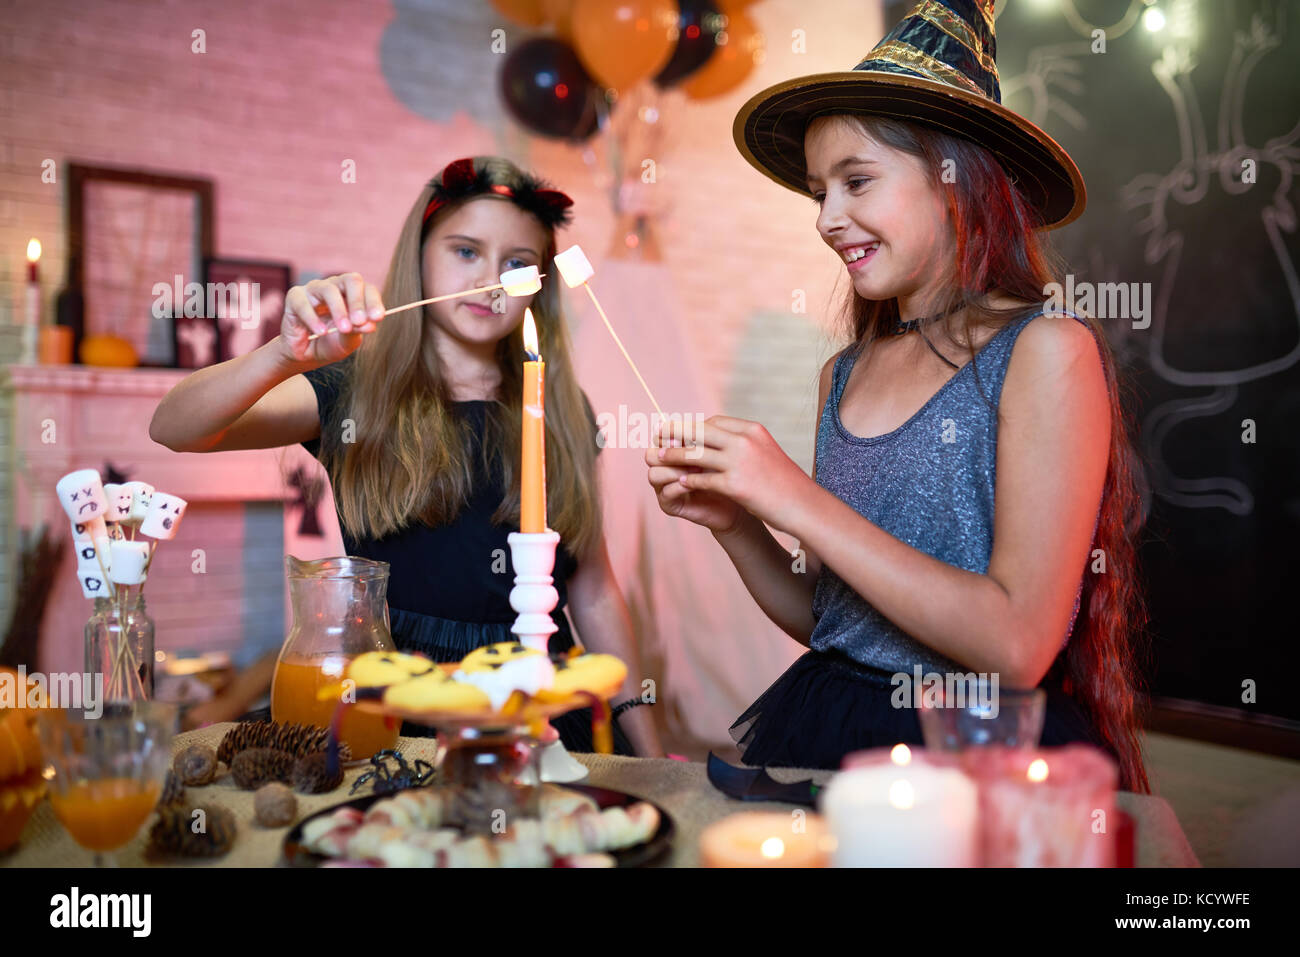 Two joyful friends wearing Halloween costumes making fried marshmallows with help of candle flame while enjoying - Stock Image